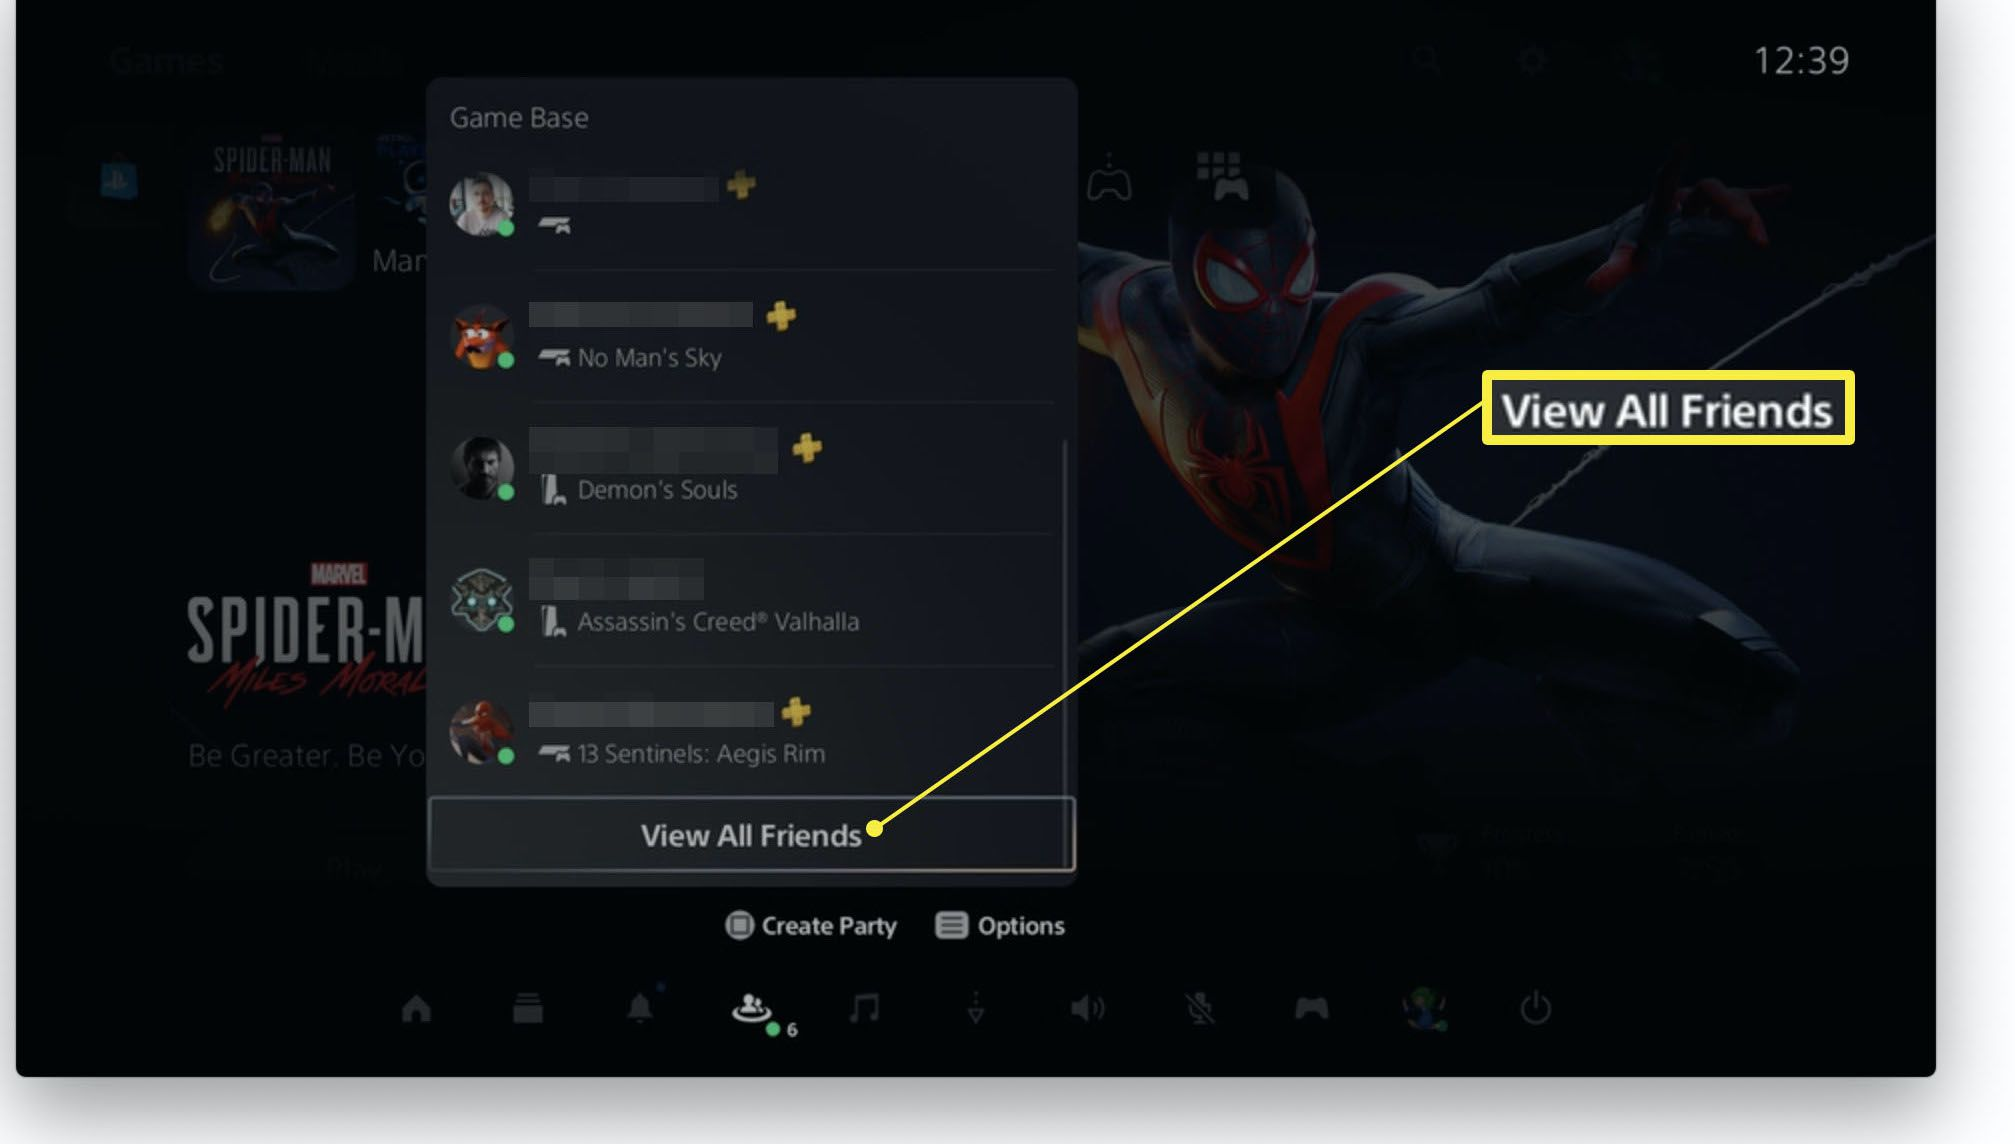 PlayStation 5 dashboard with View All Friends highlighted